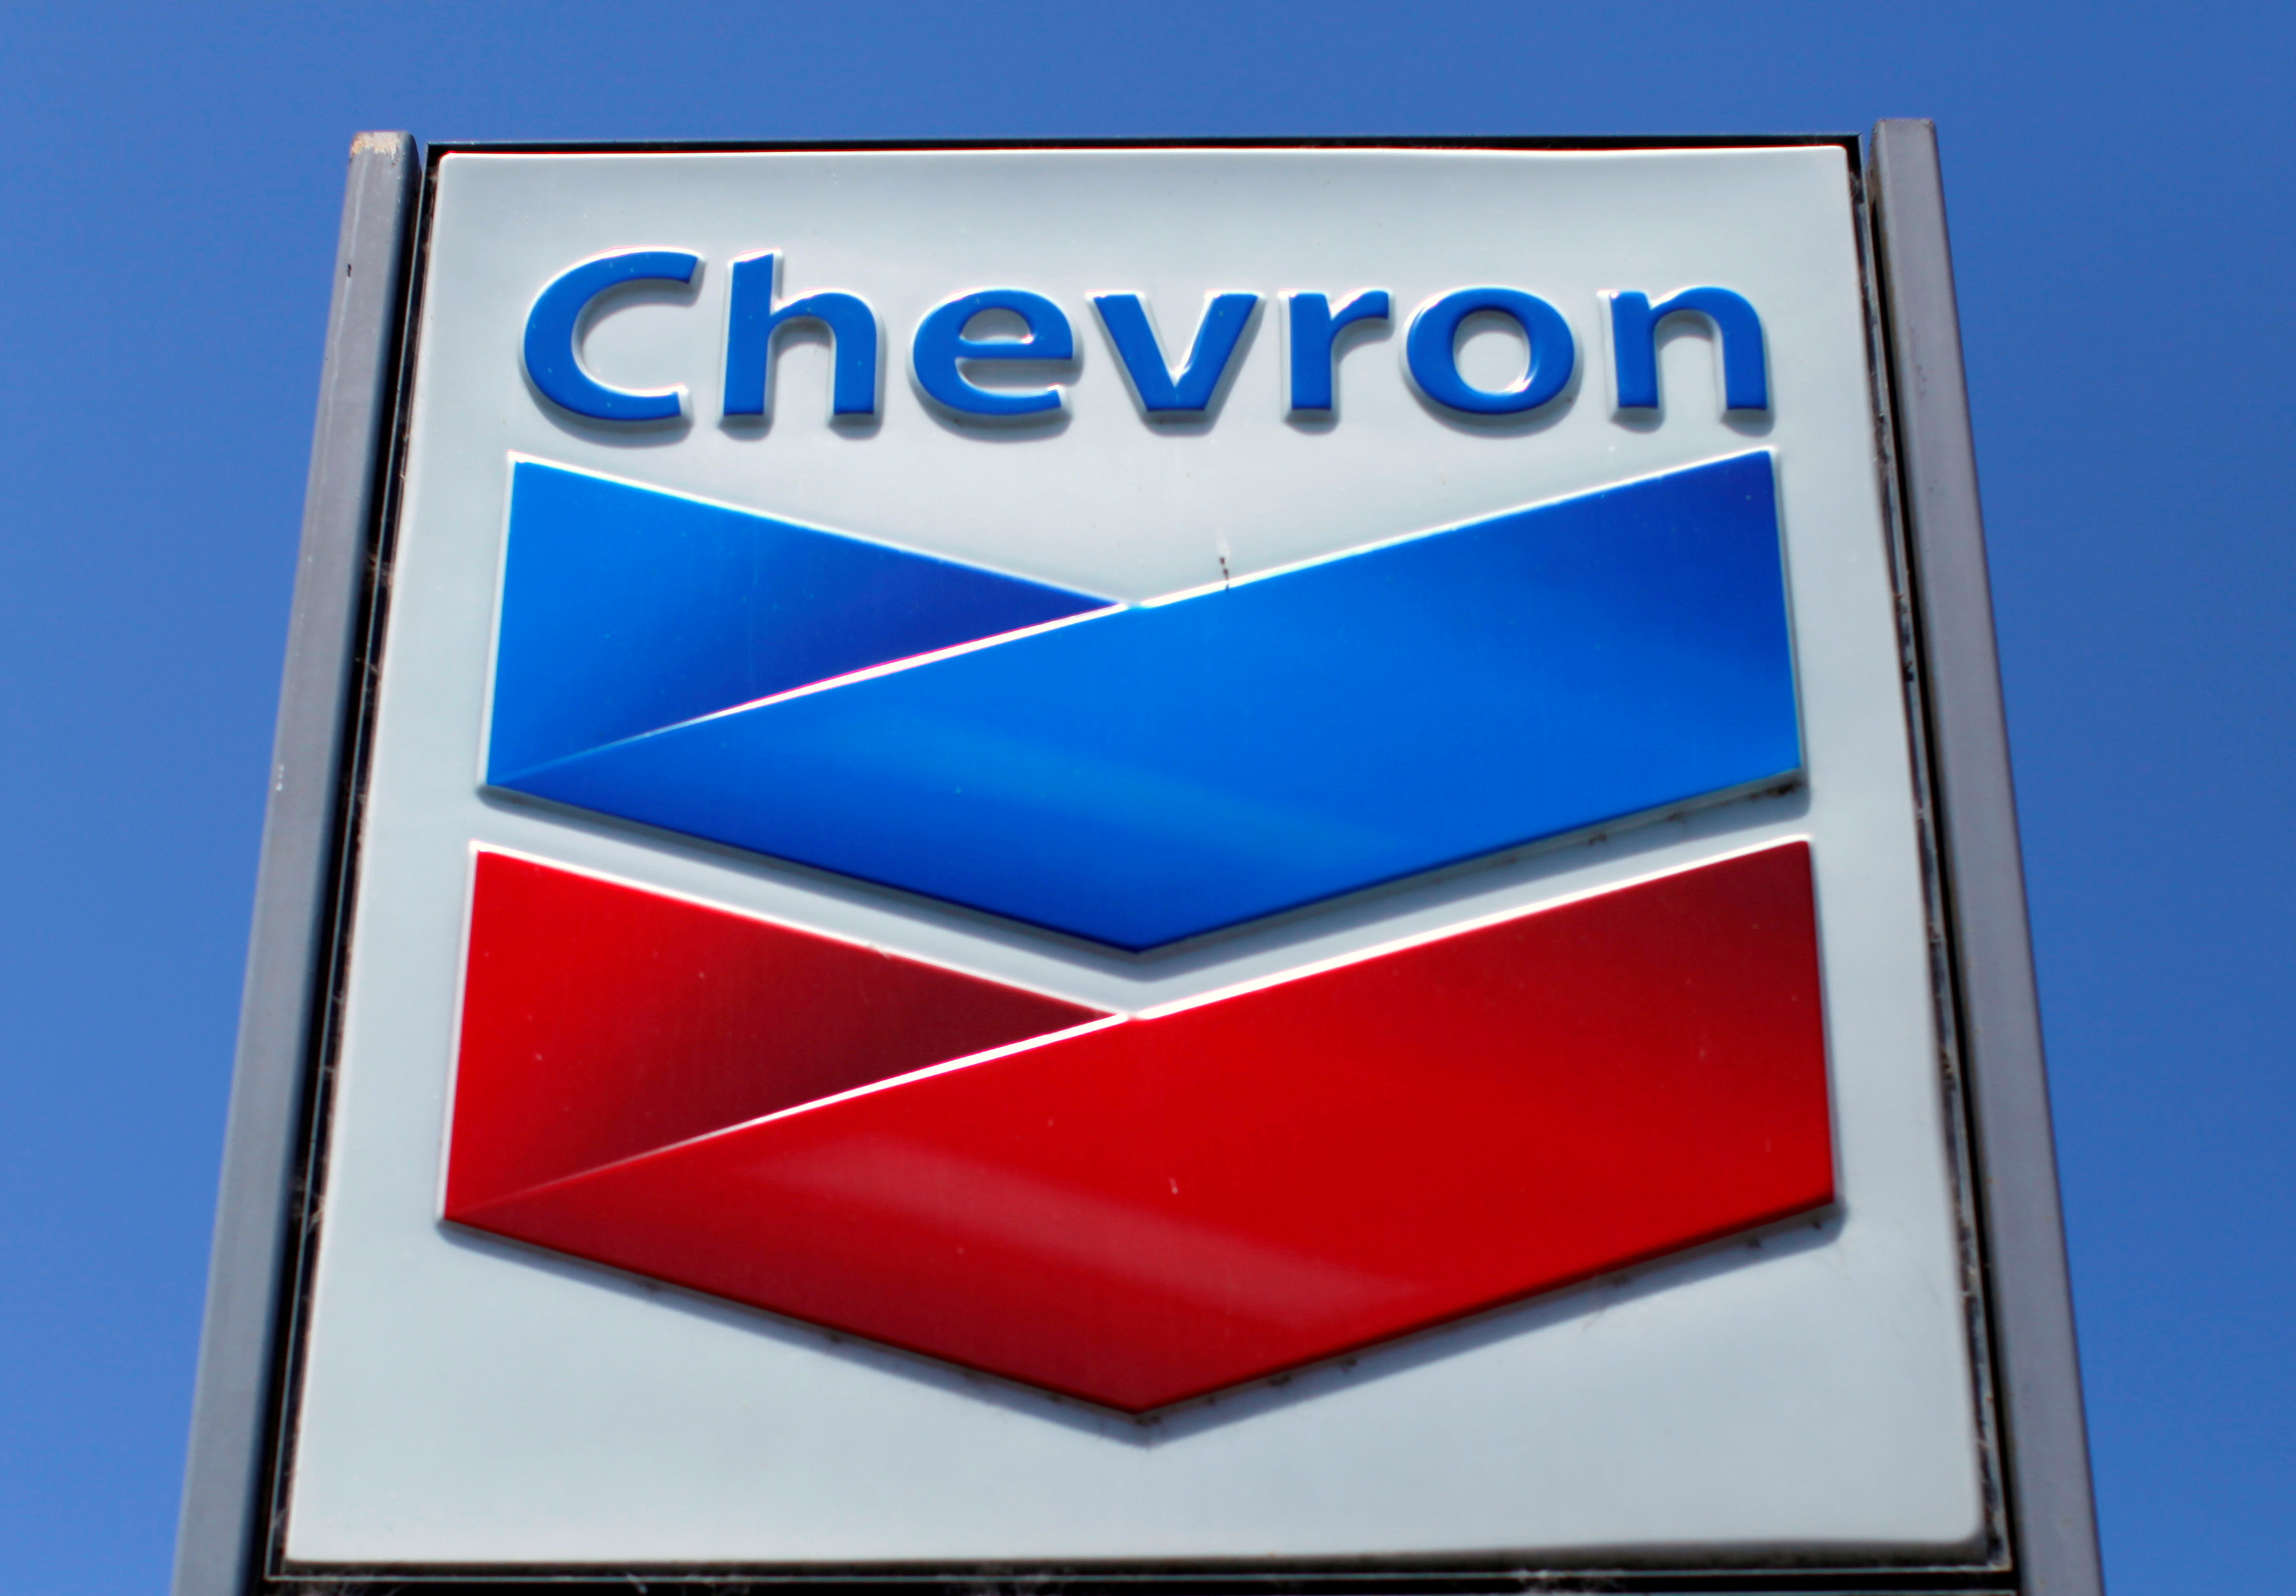 File photo: A Chevron gas station sign is seen in Del Mar, California, April 25, 2013. REUTERS/Mike Blake